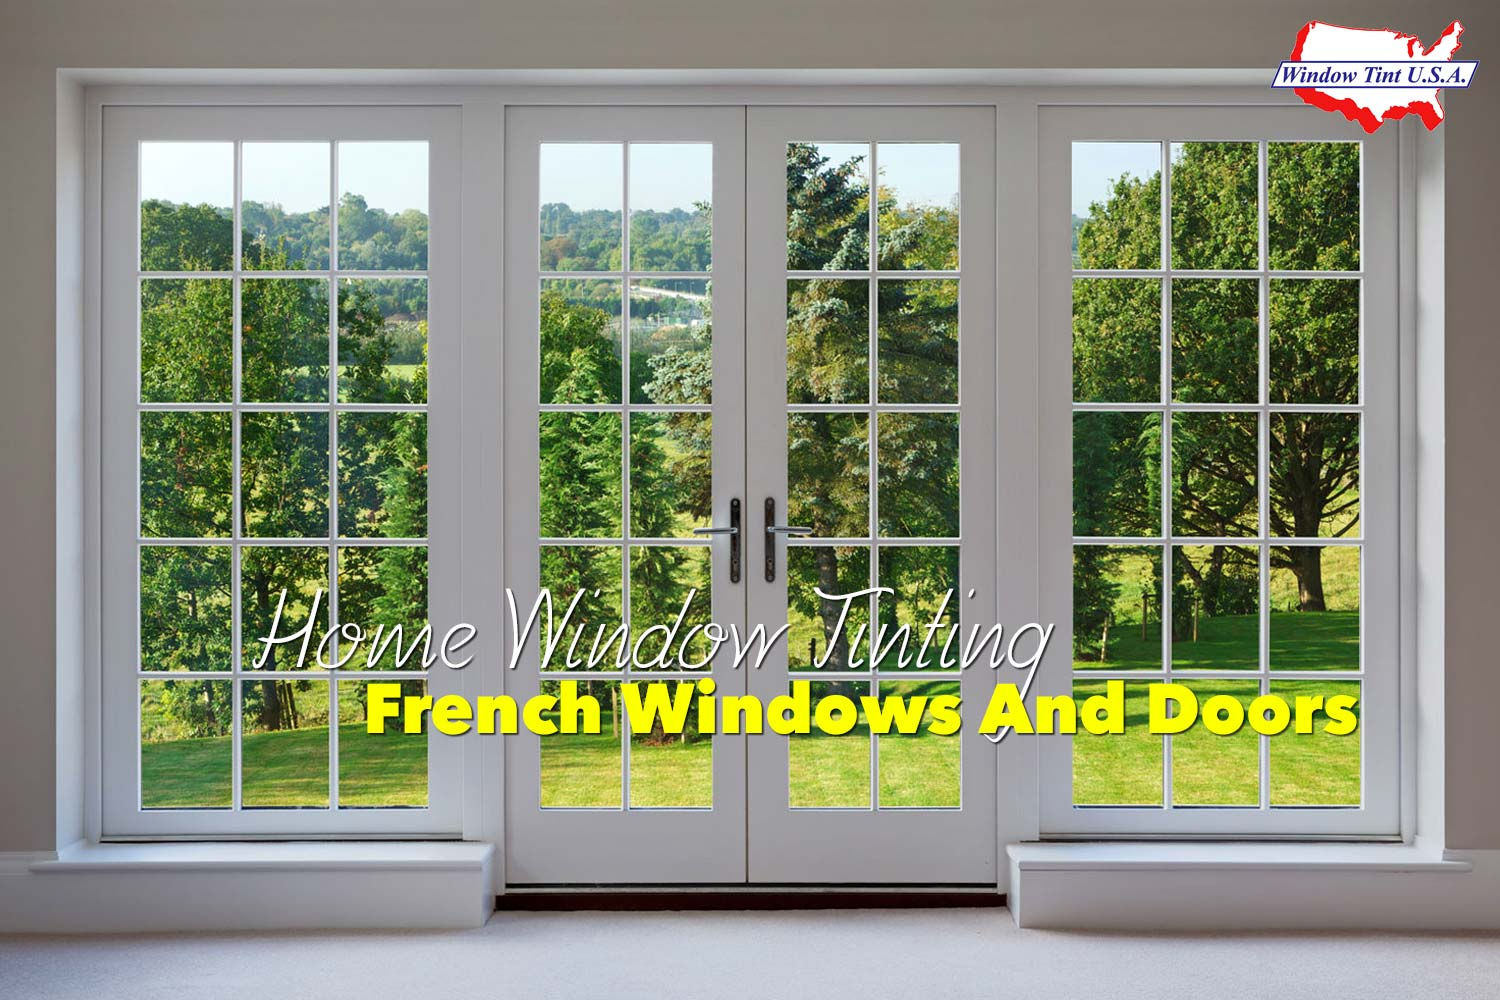 tips for applying home window tinting to french windows and doors